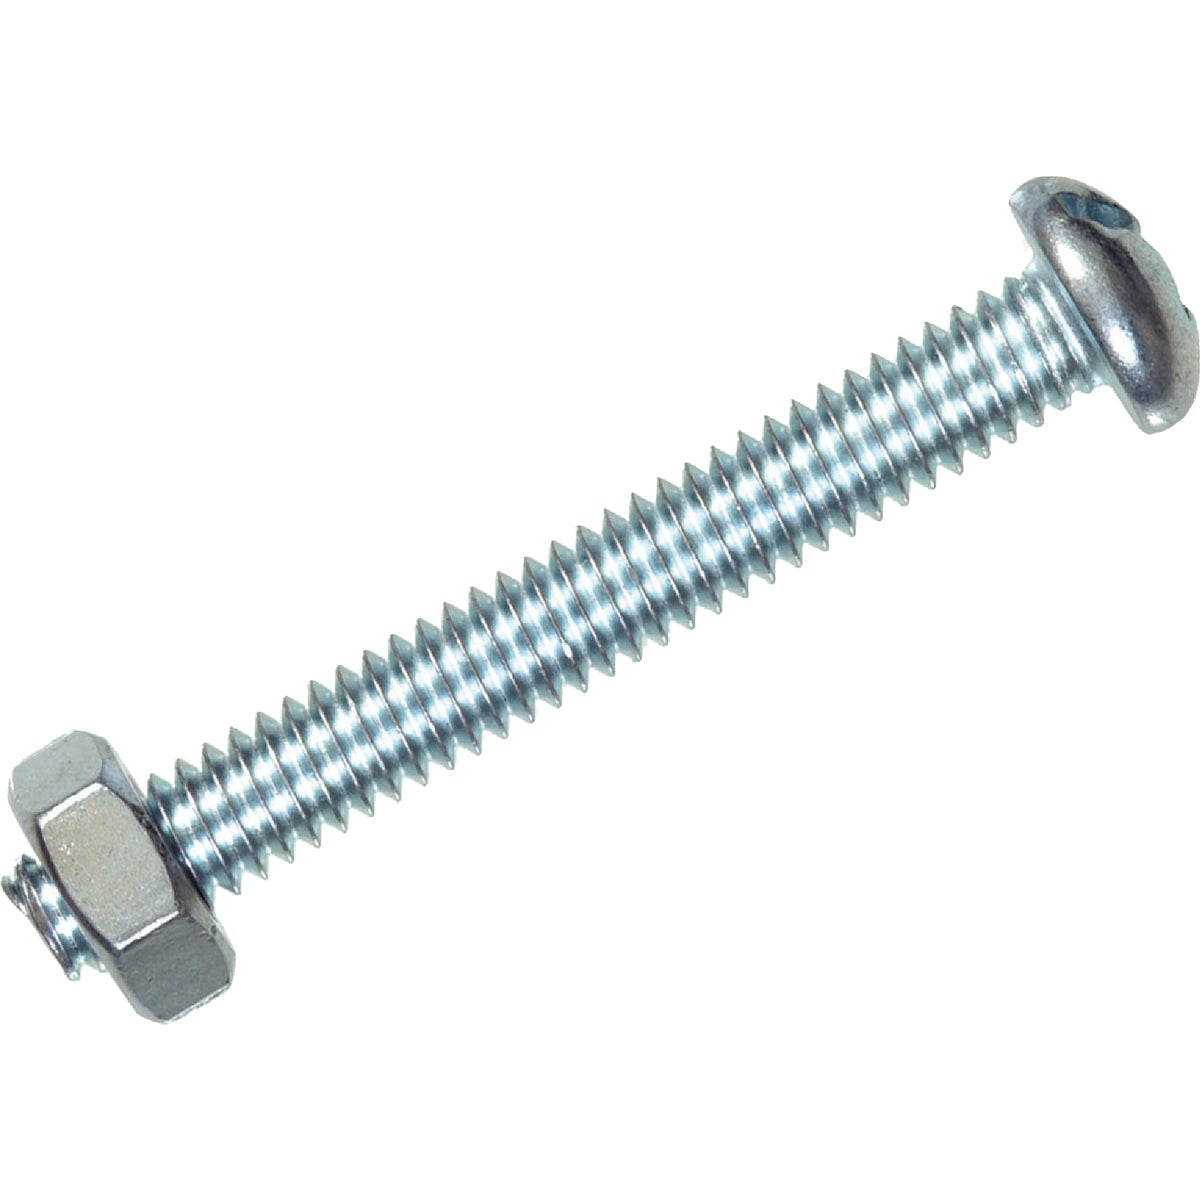 6-32X3/4 MACHINE SCREW